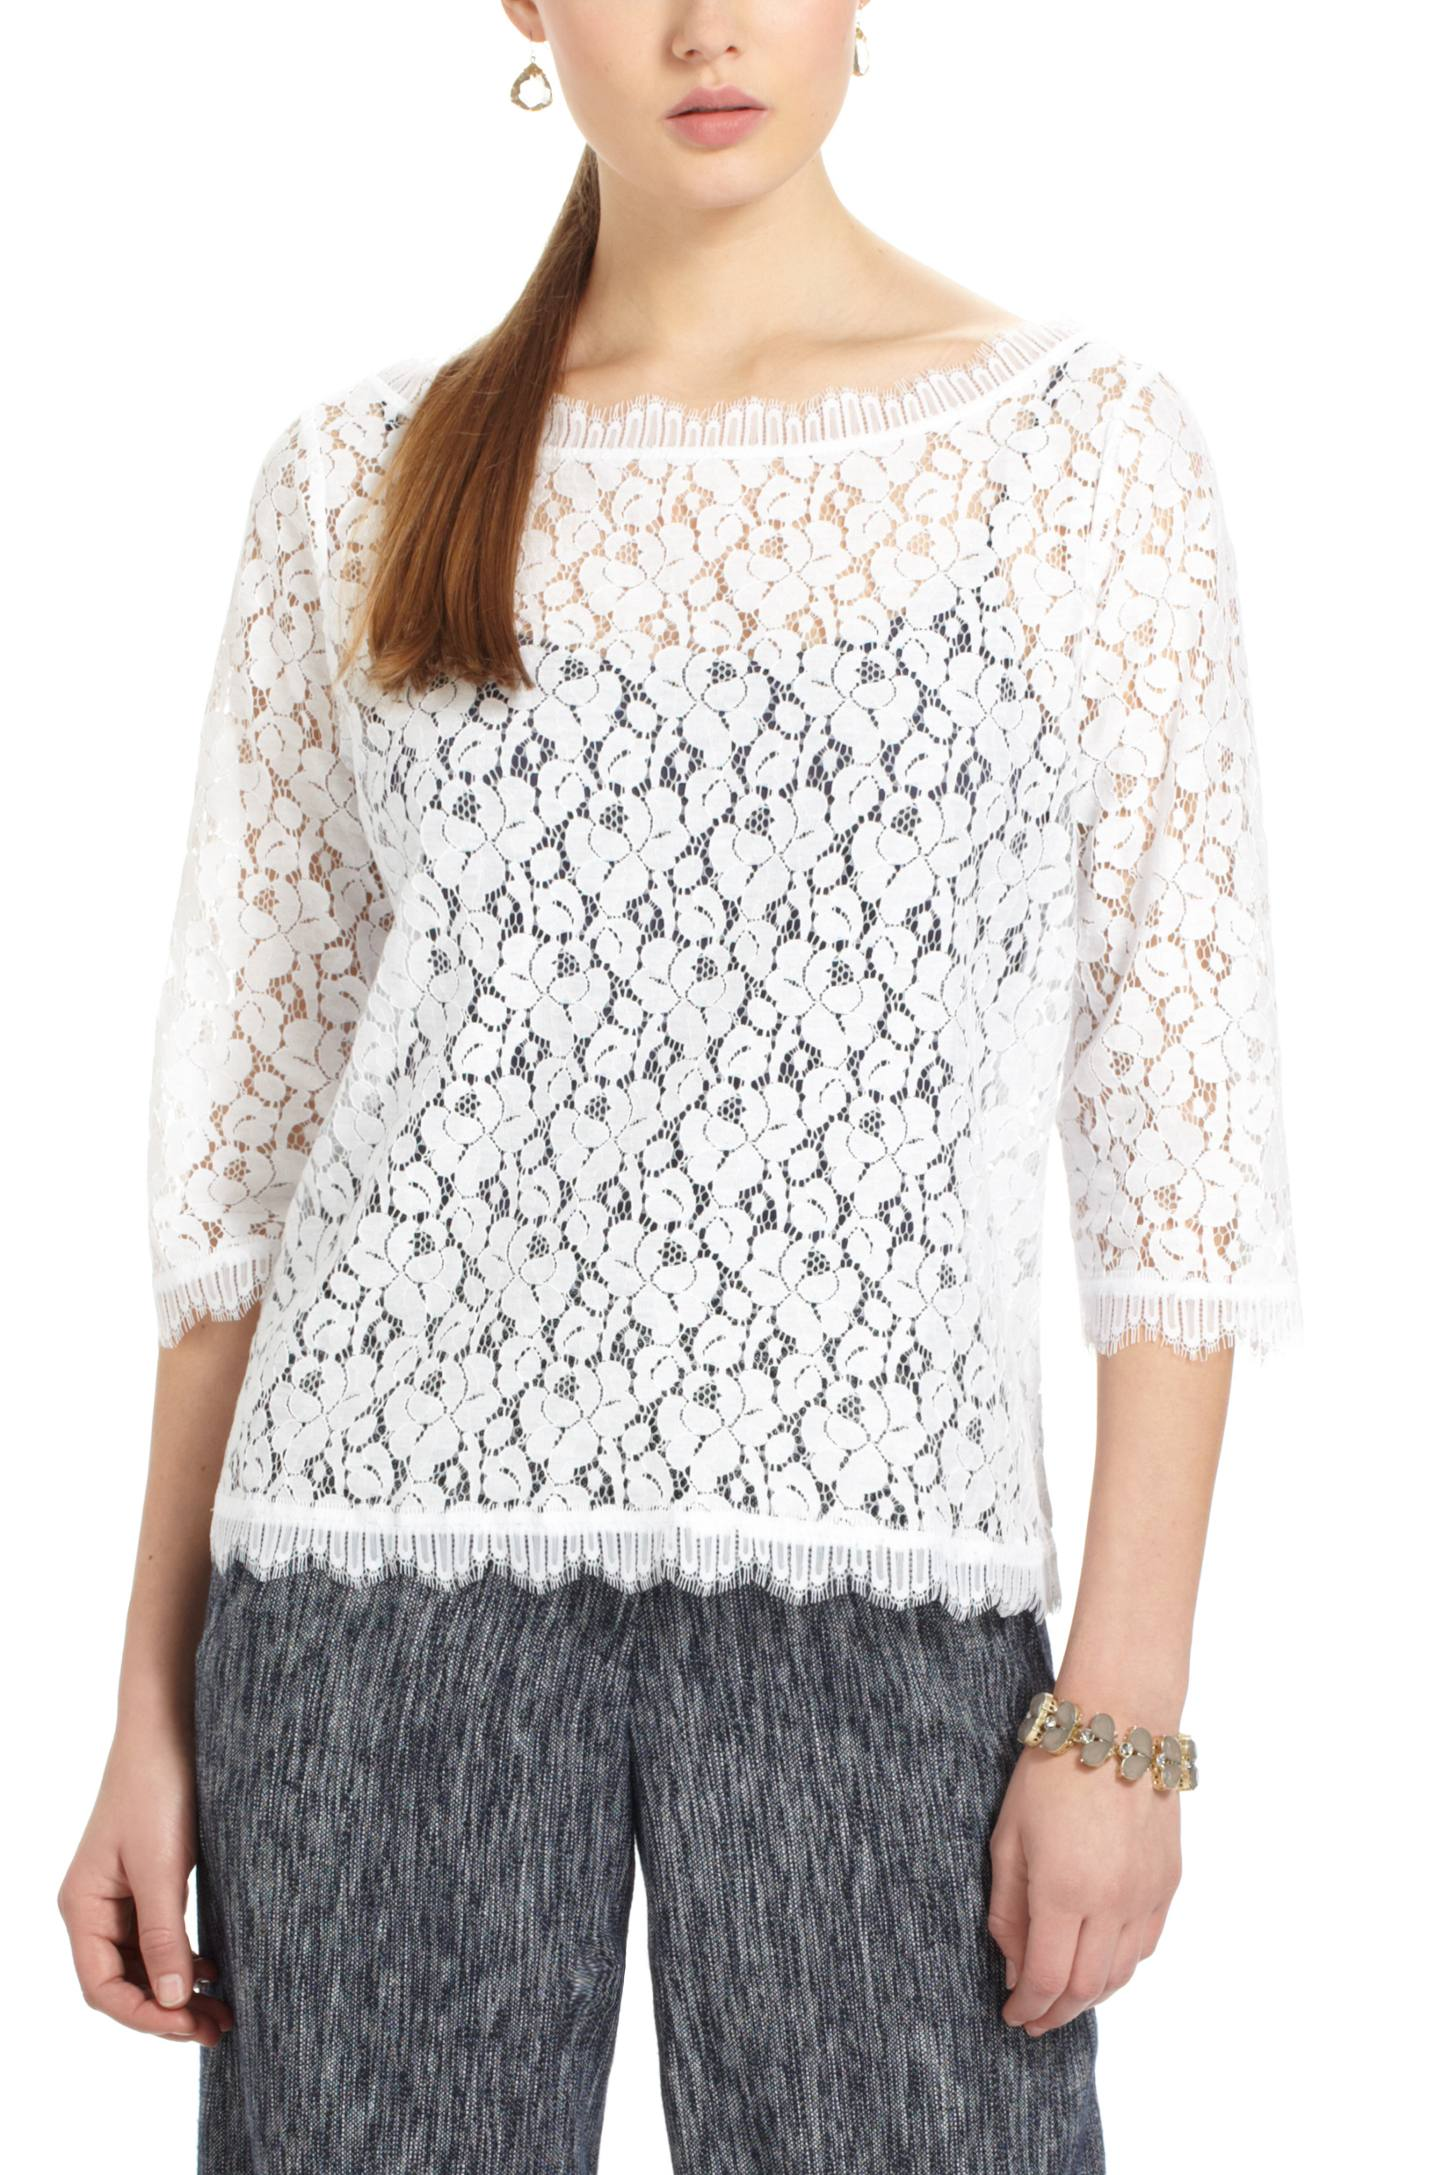 Fringed Lace Layer Tee